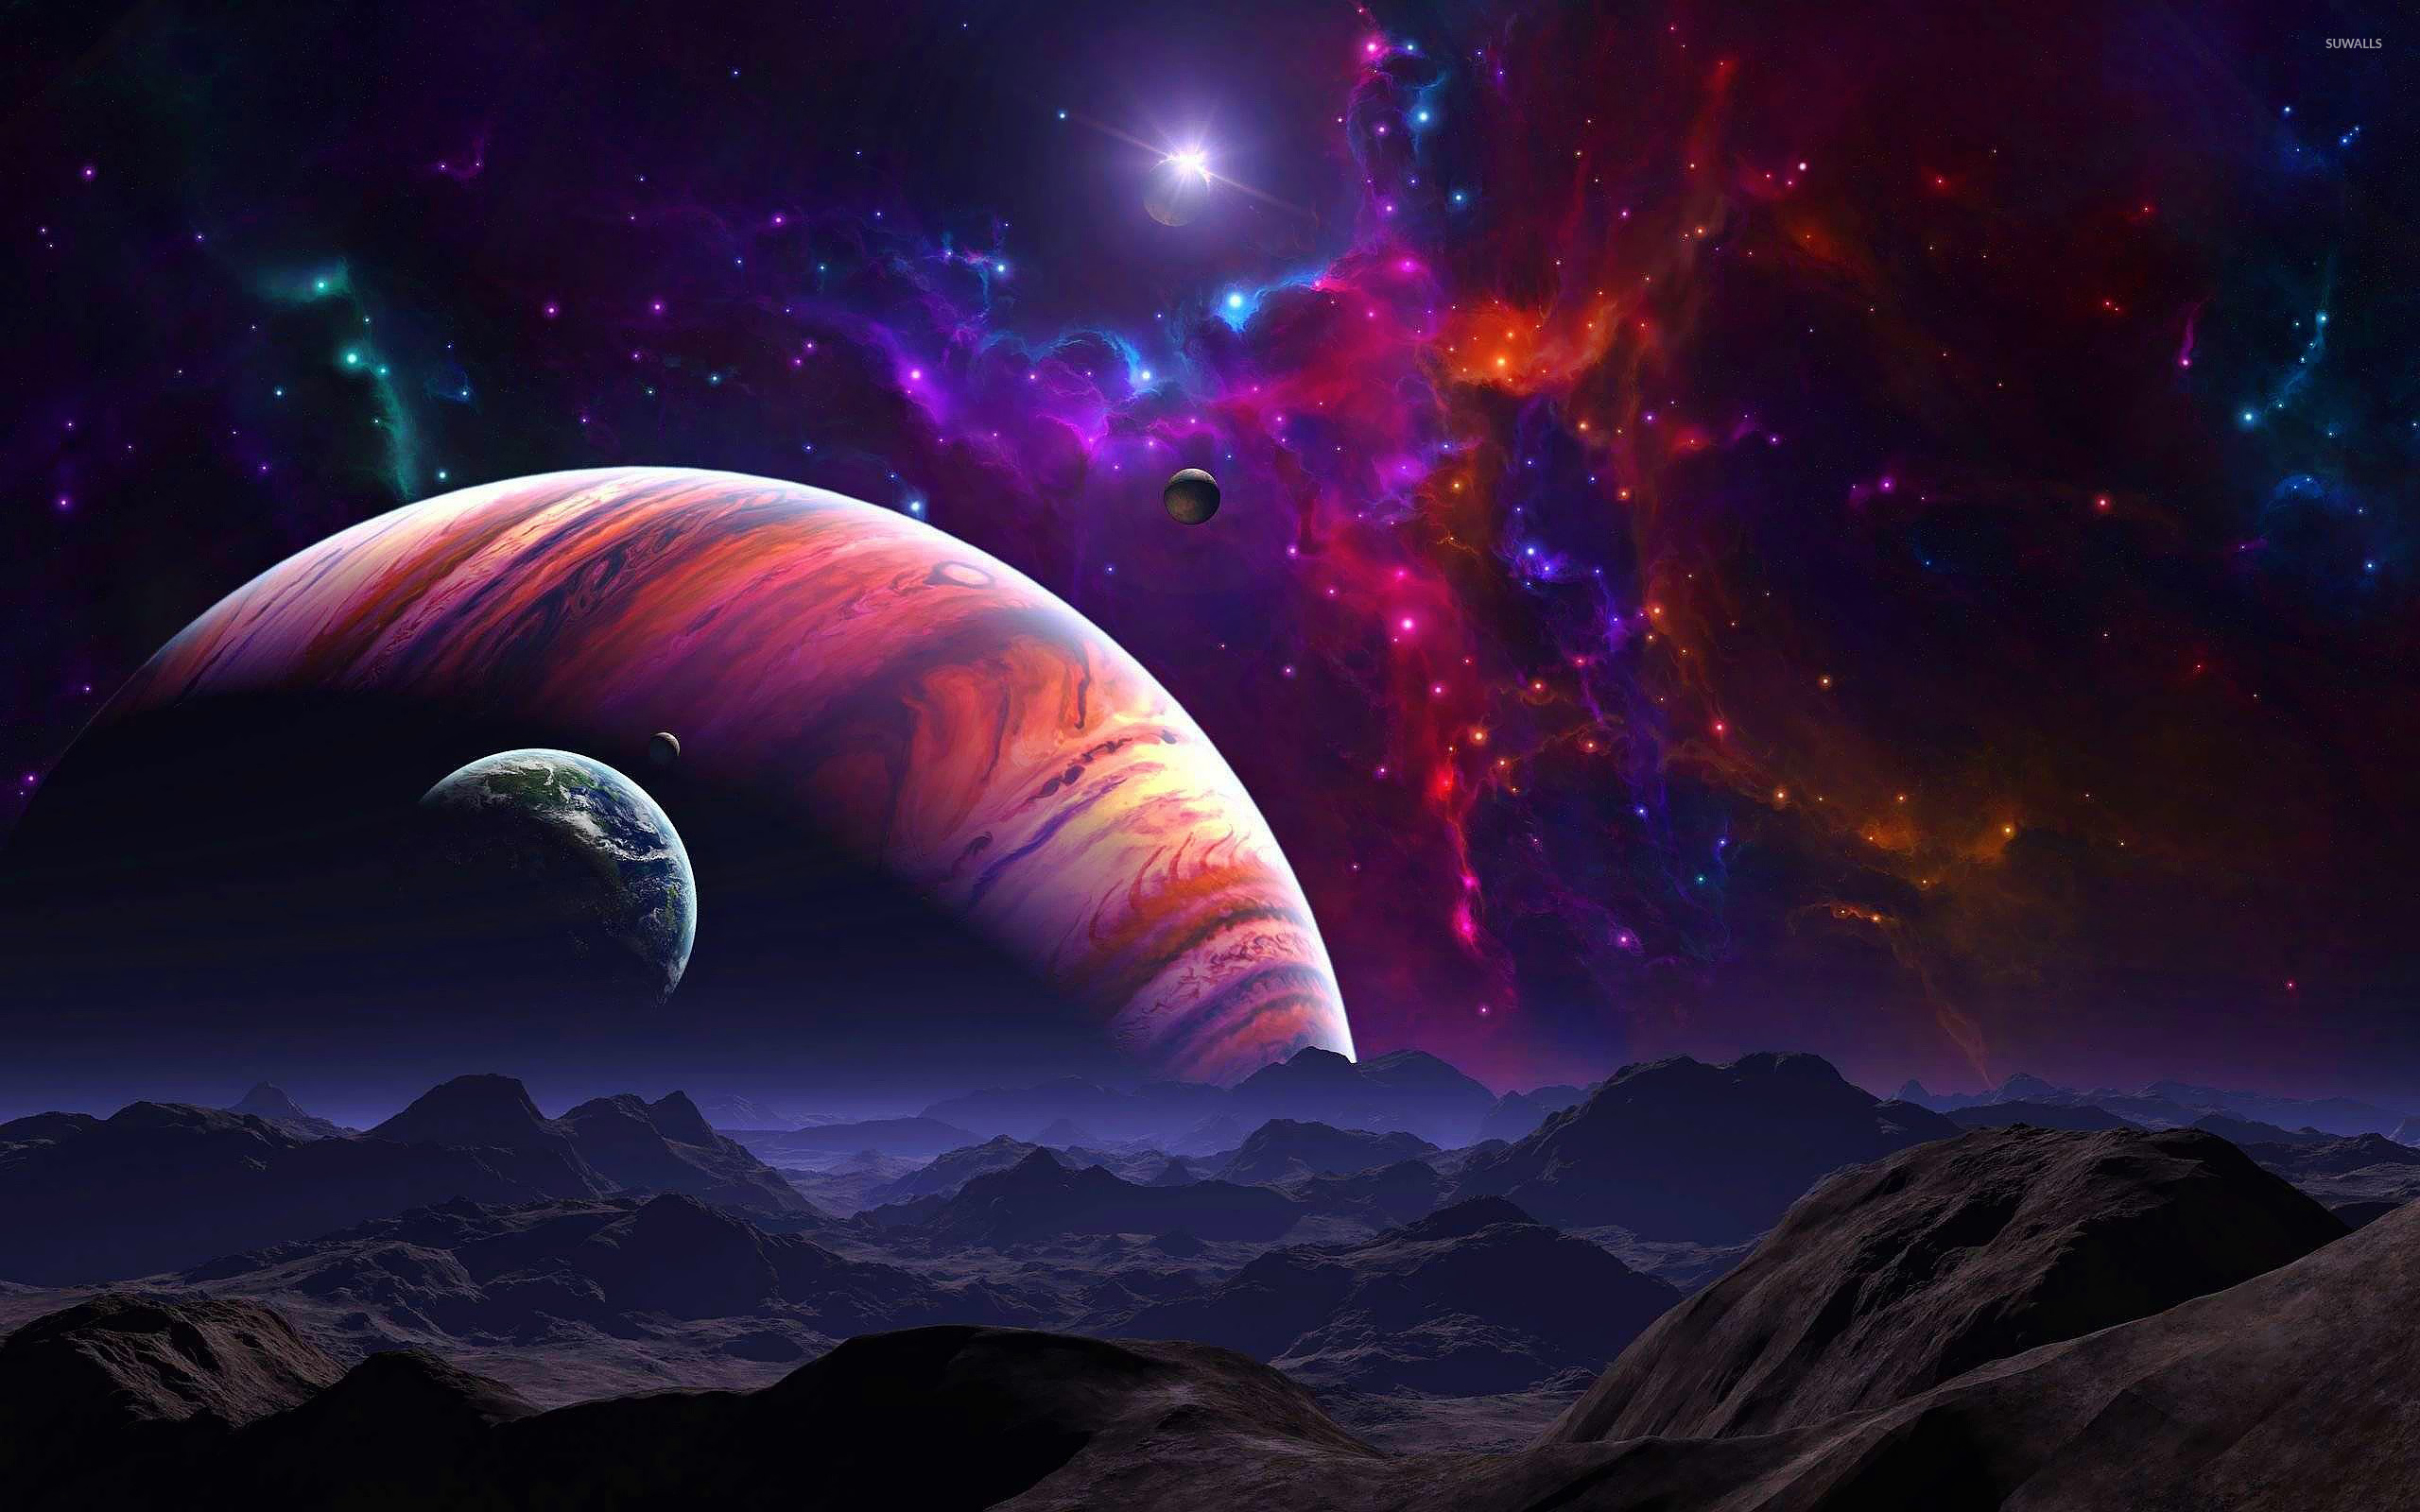 Good Wallpaper Mountain Space - purple-space-above-the-mountains-25825-2560x1600  Snapshot_46845.jpg